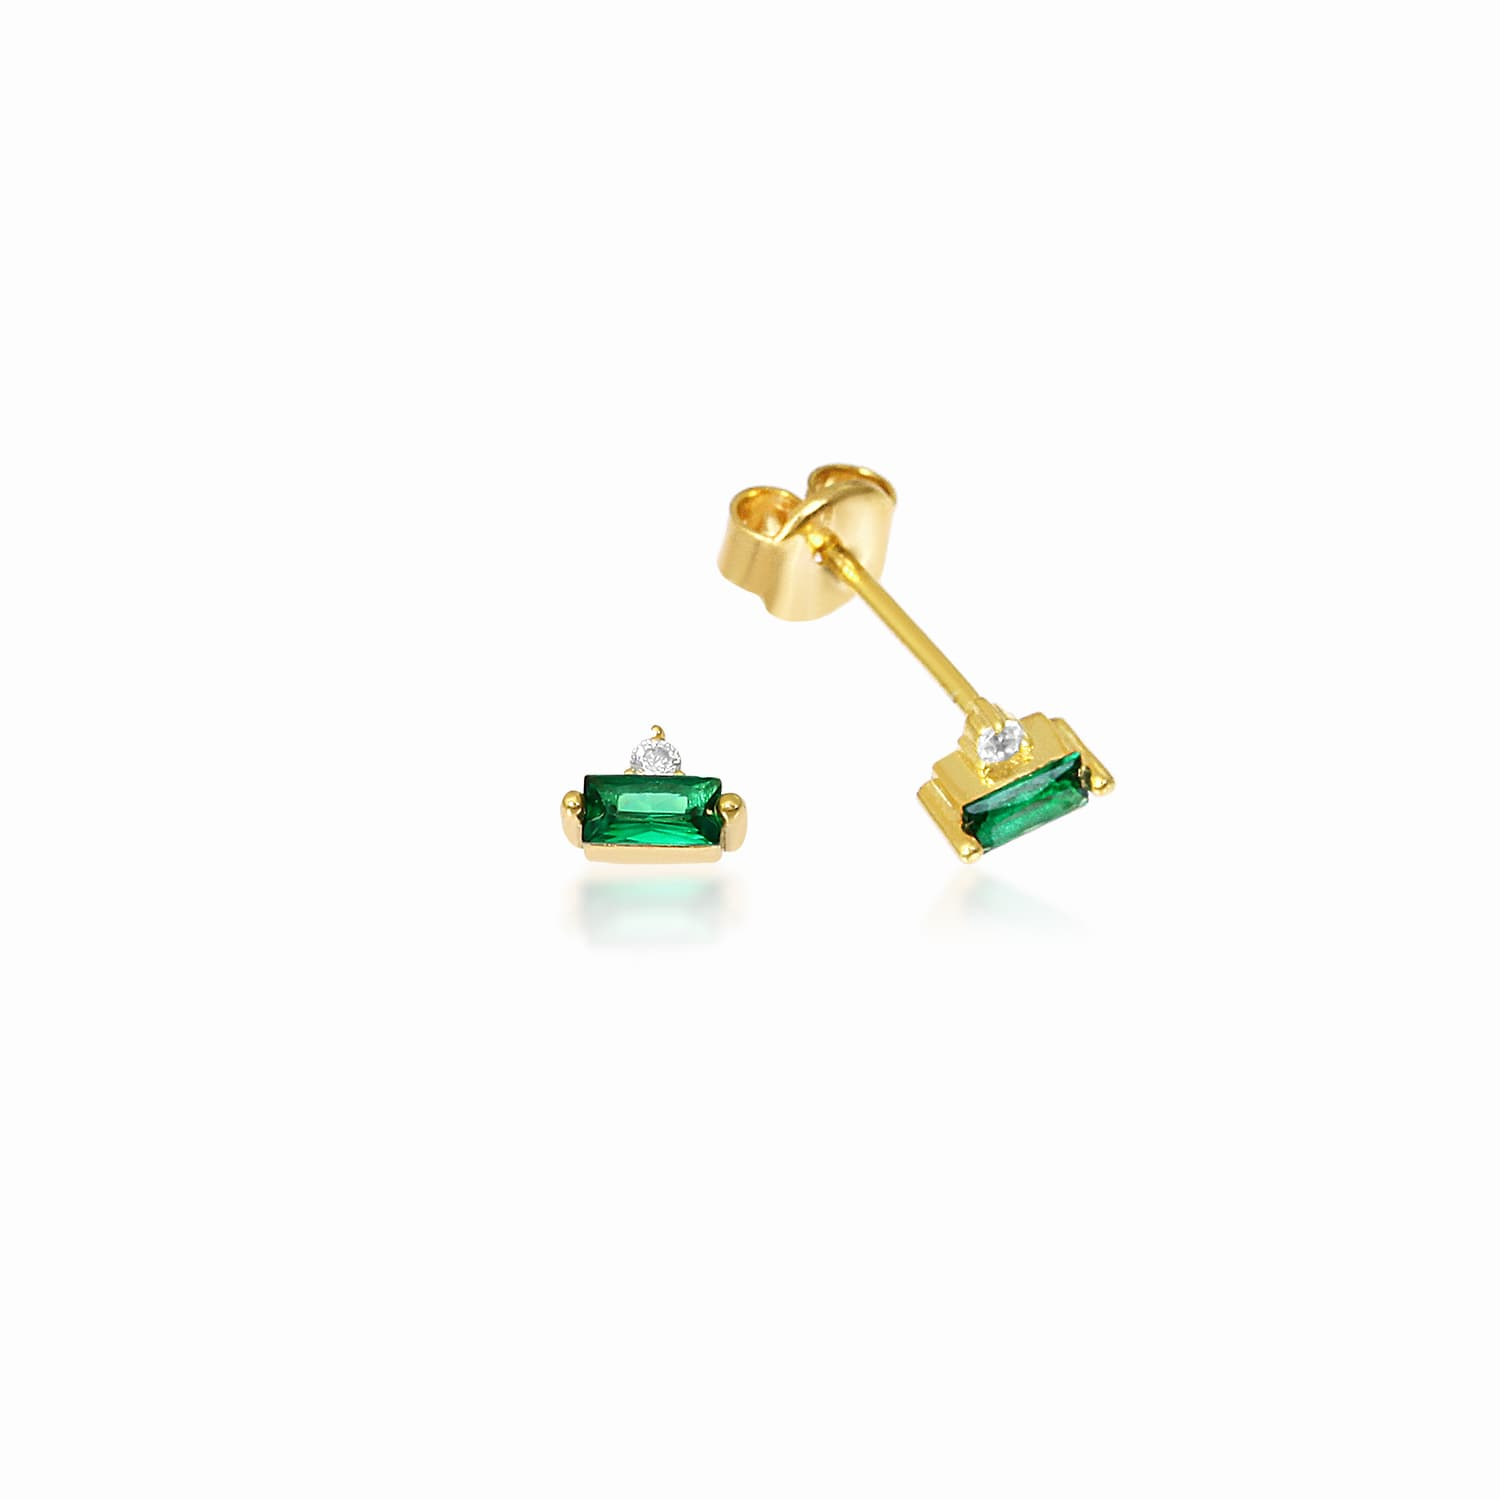 BONS EMERALD EARRINGS